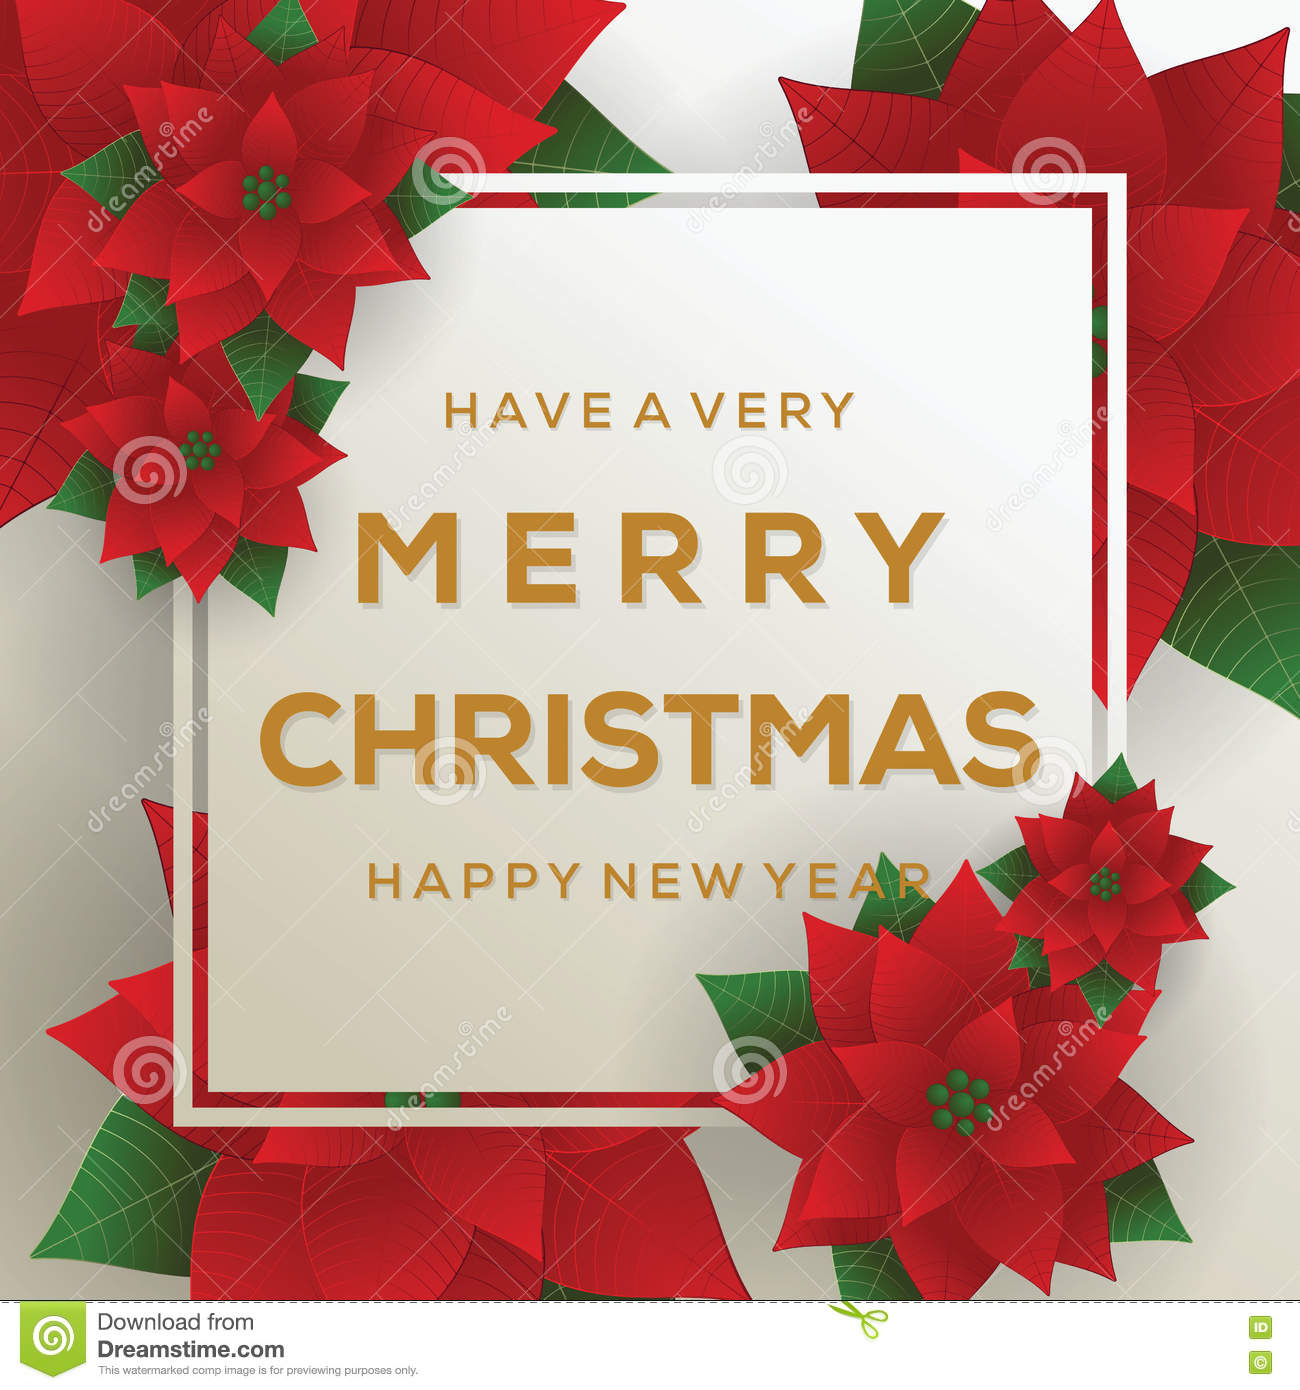 merry christmas card happy new year red background